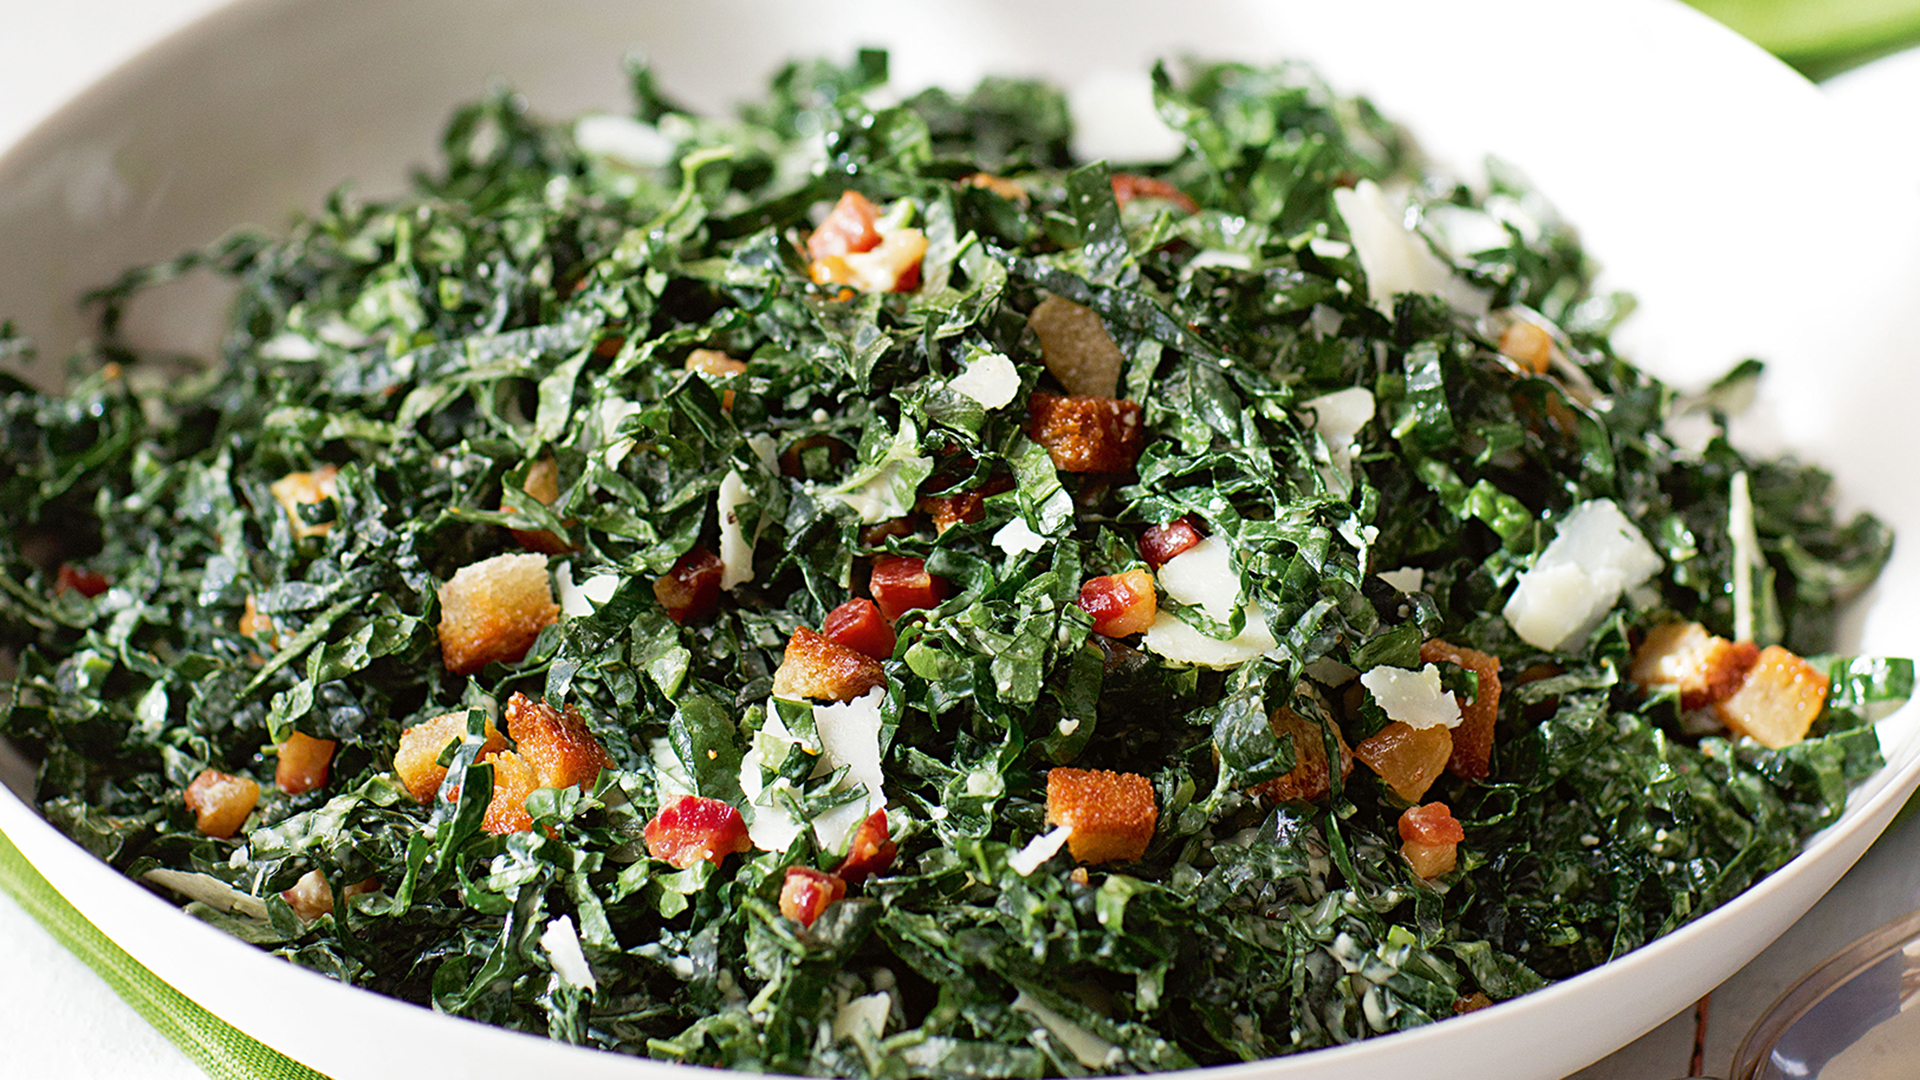 Ina Garten Salads ina garten's kale salad with pancetta and pecorino - today